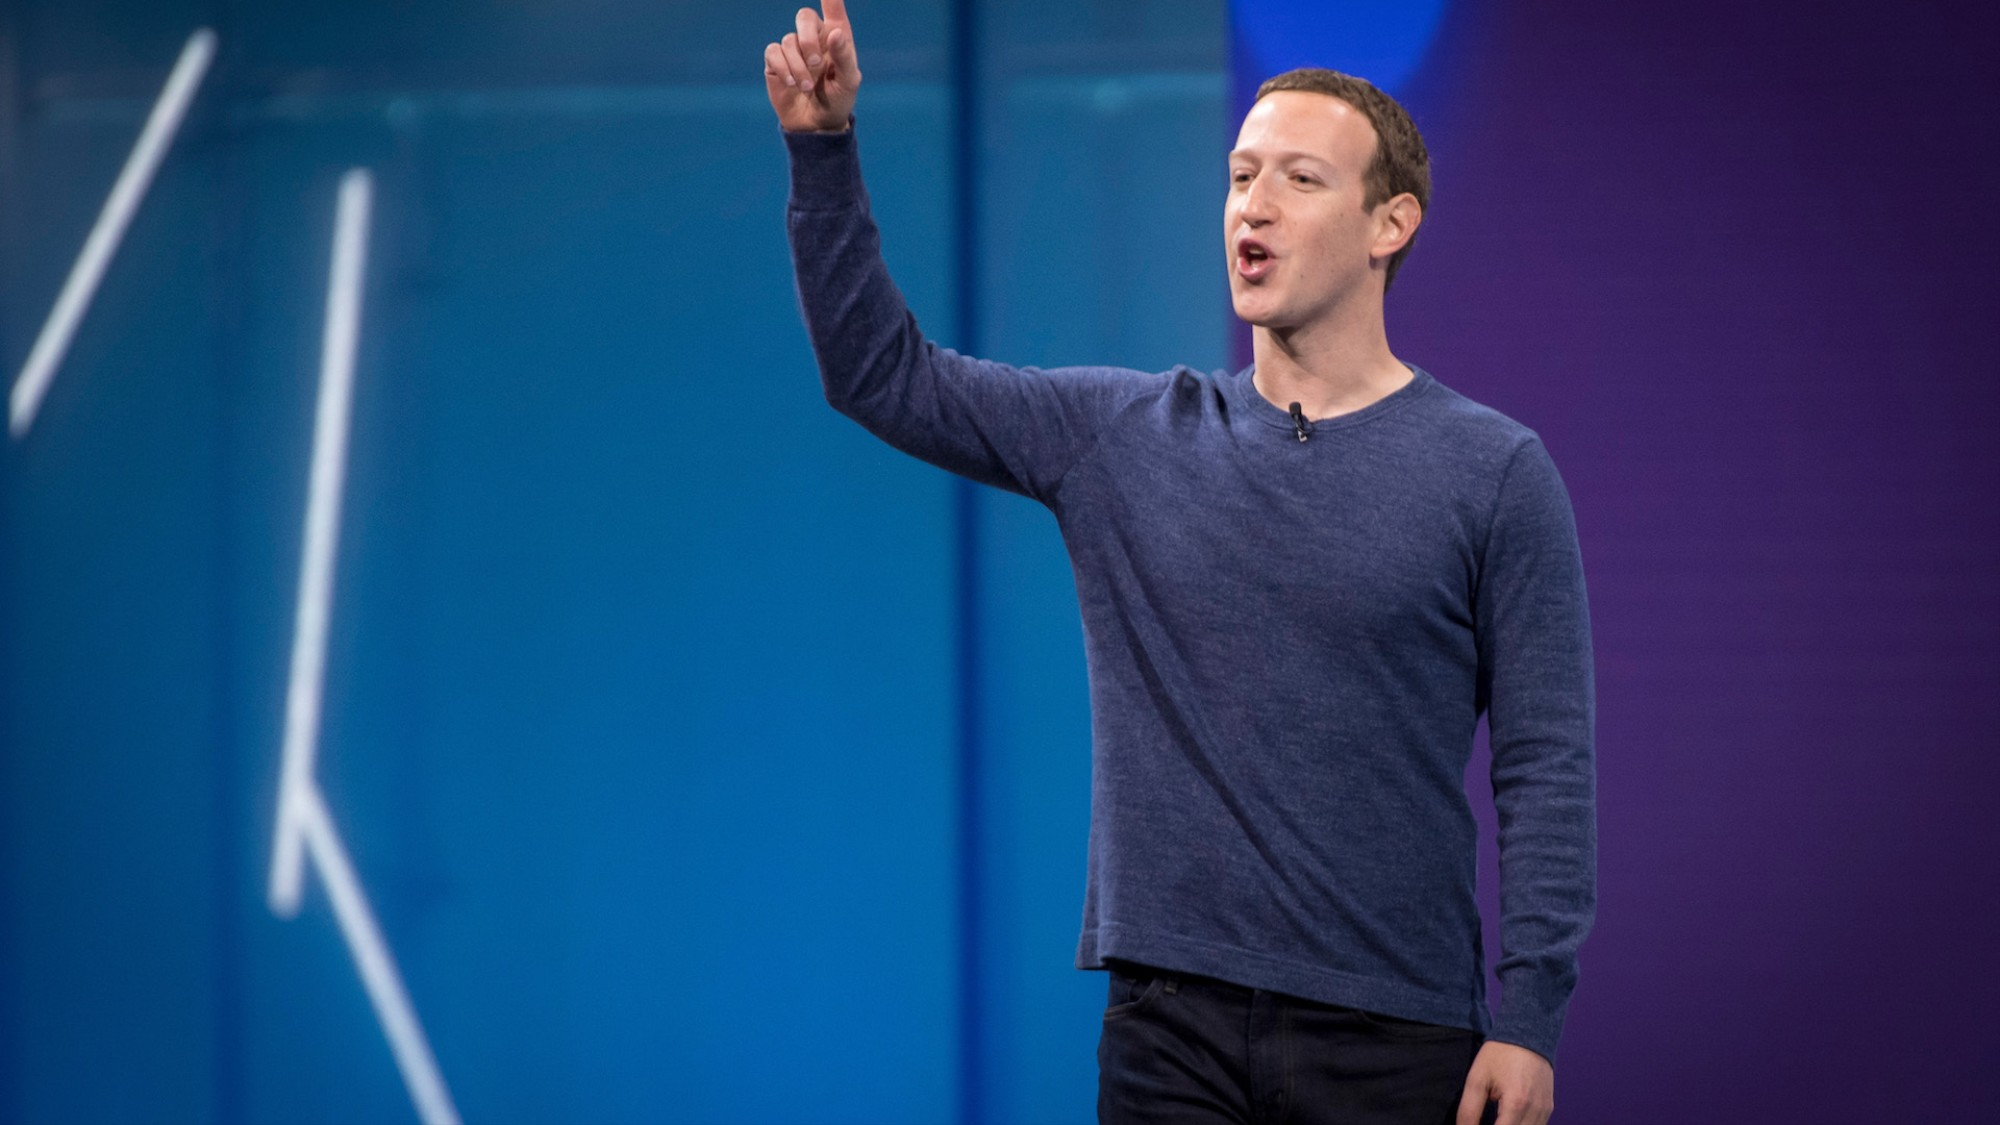 Facebook's liberal bias audit will be led by an anti-Muslim